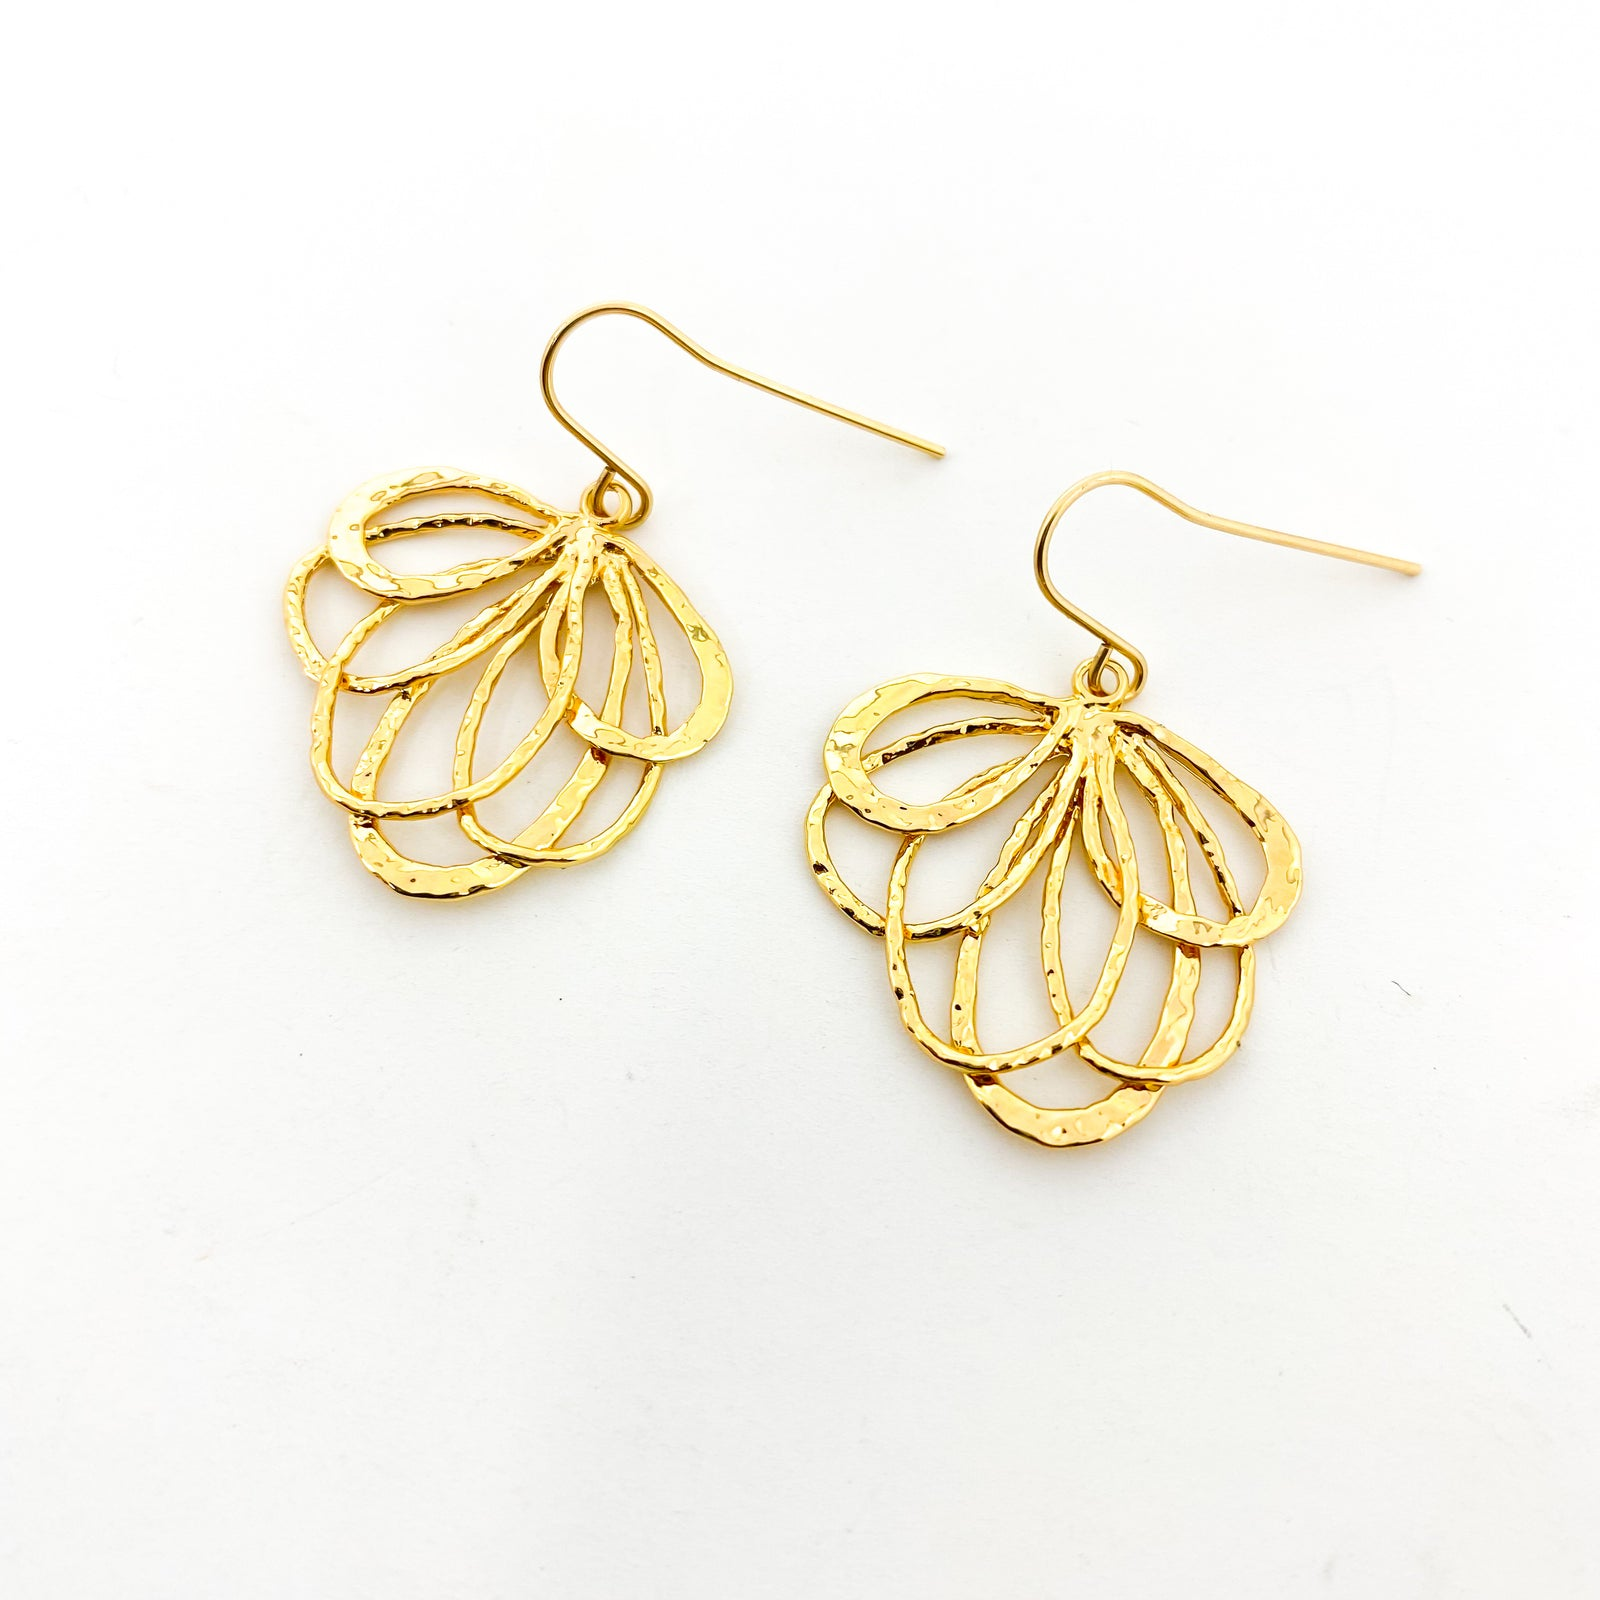 HANGING DAHLIA FLOWER EARRINGS | 14K GOLD-FILLED